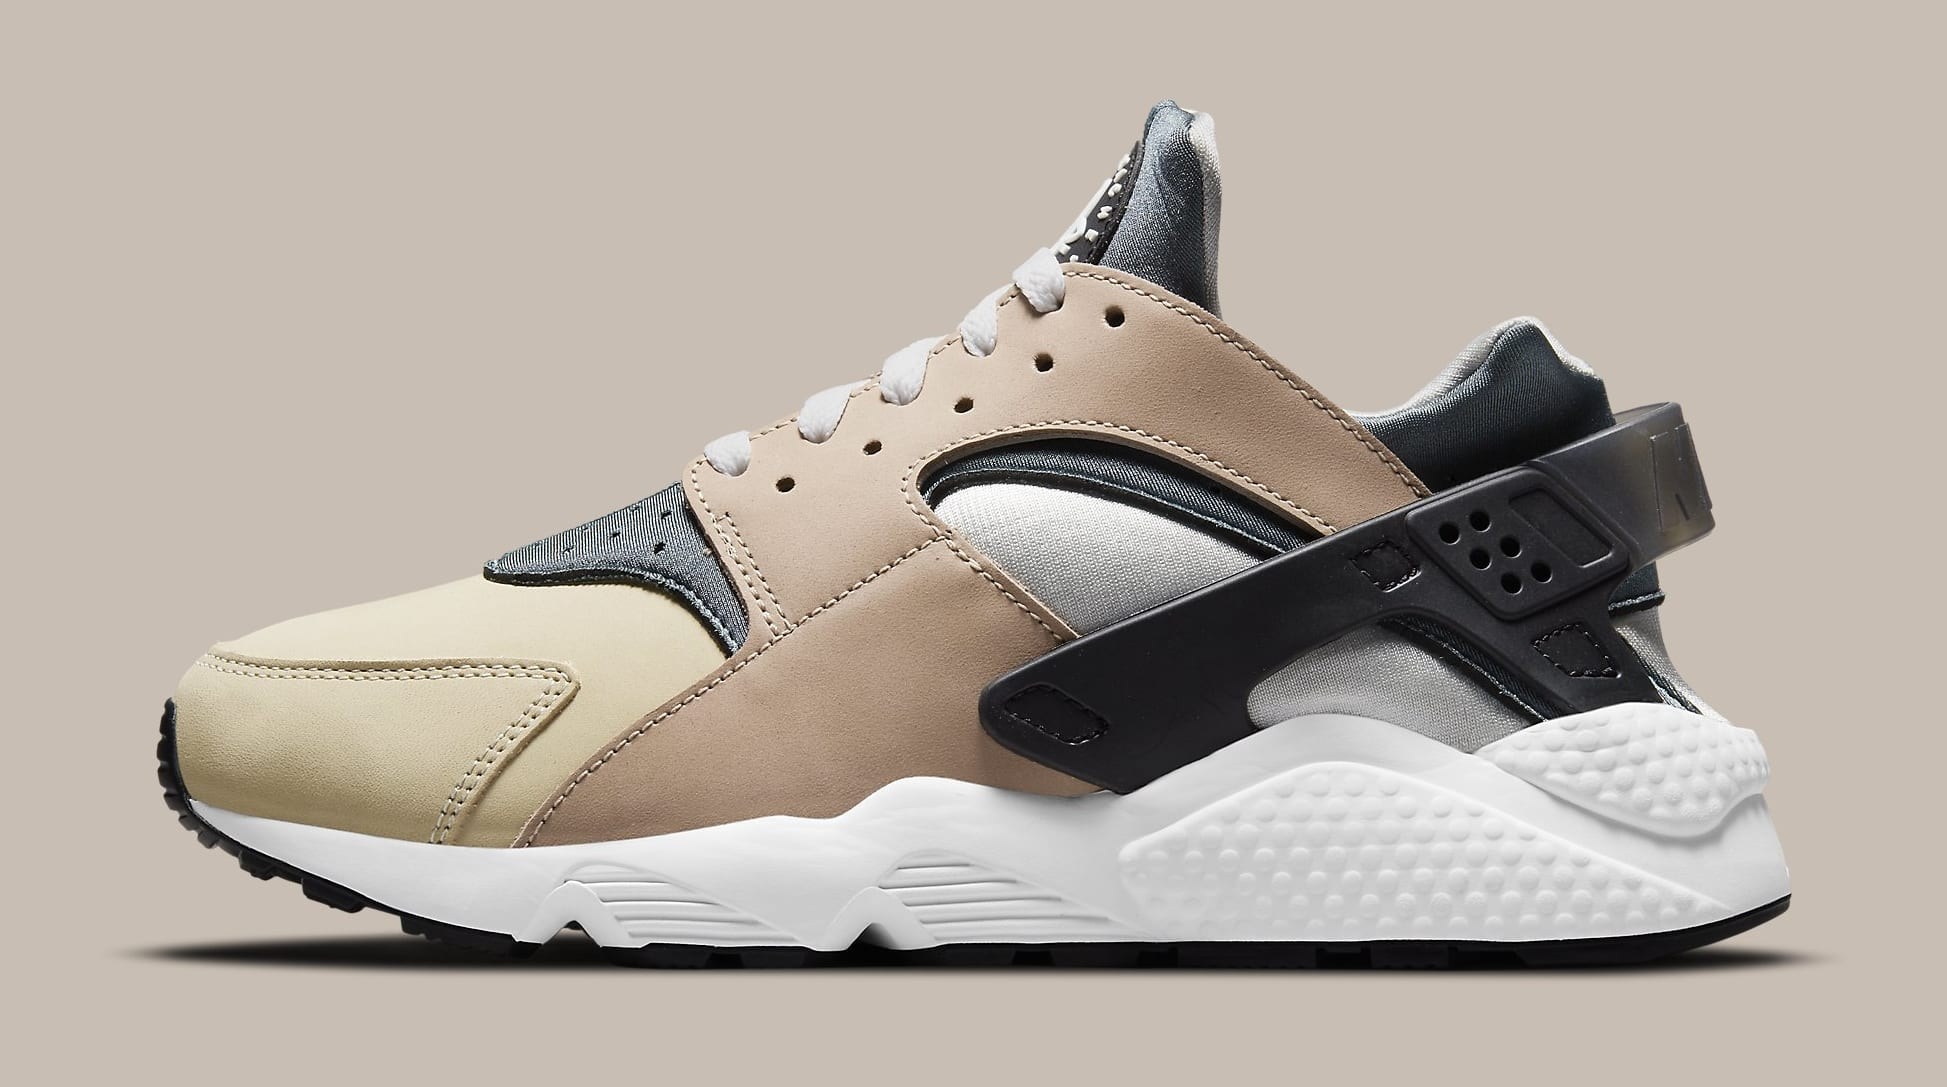 Nike Air Huarache 'Escape' DH9532-201 Lateral